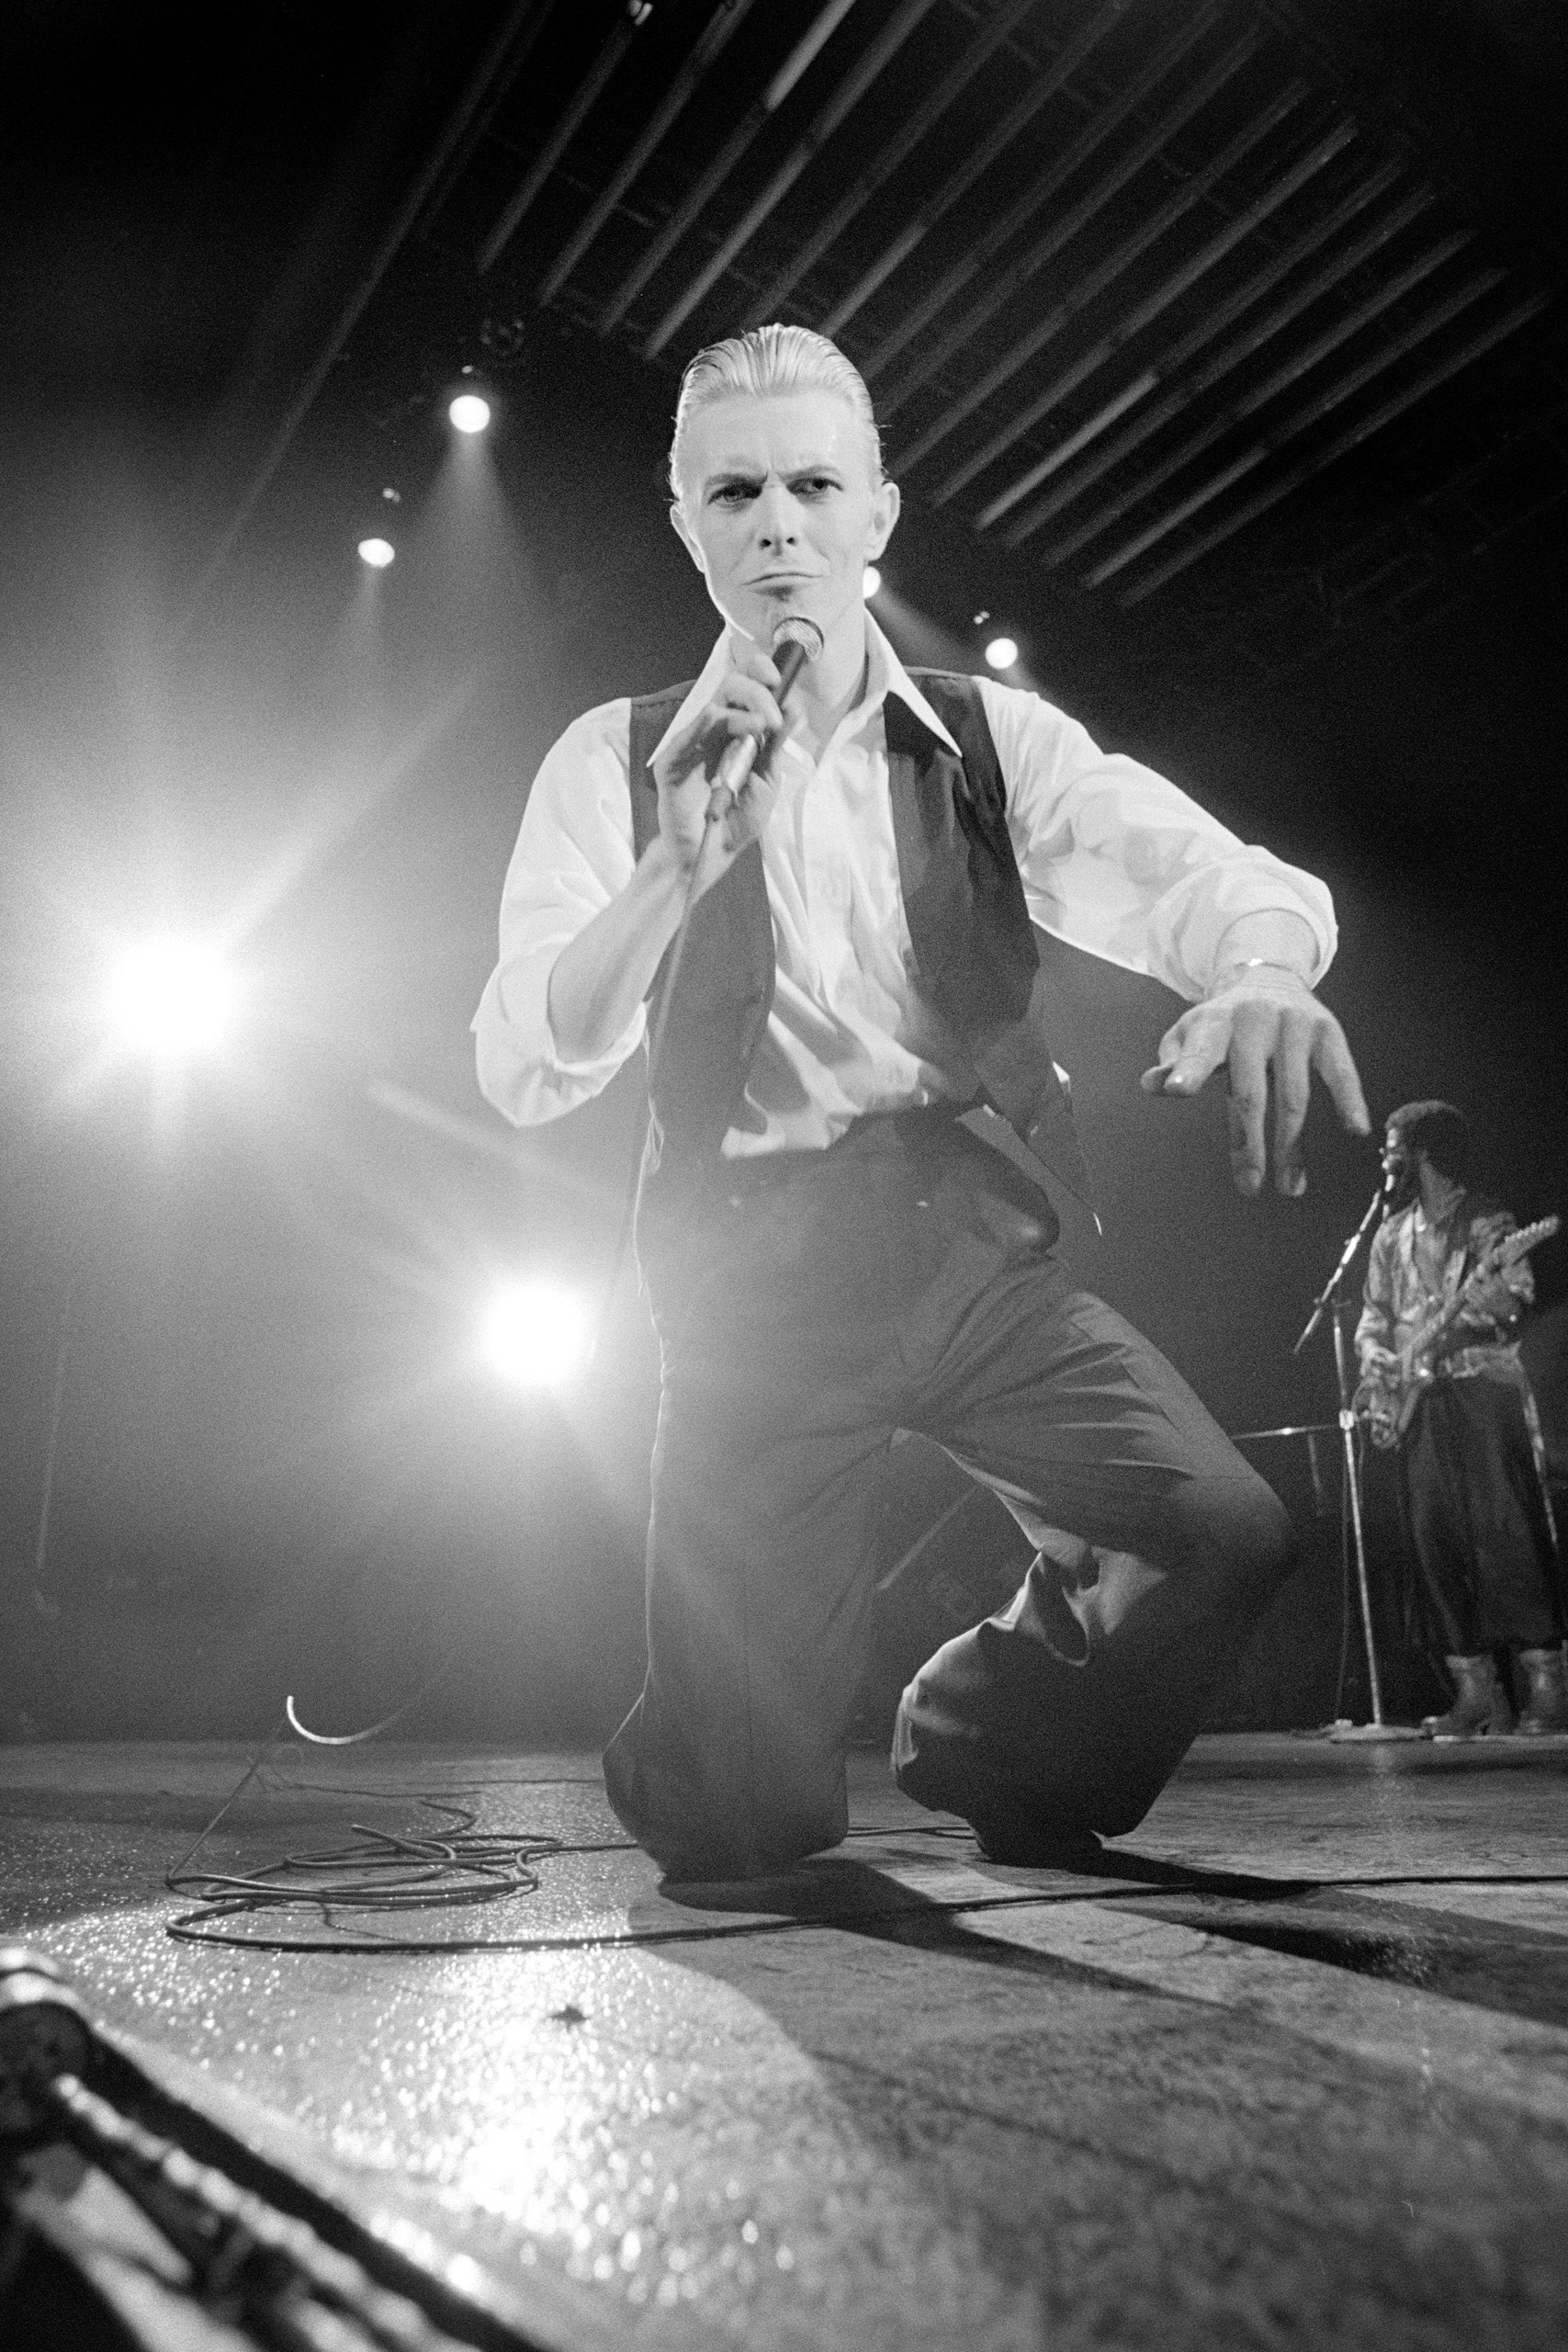 Bowie performing on stage prepares to make a lunge into Kent's camera.